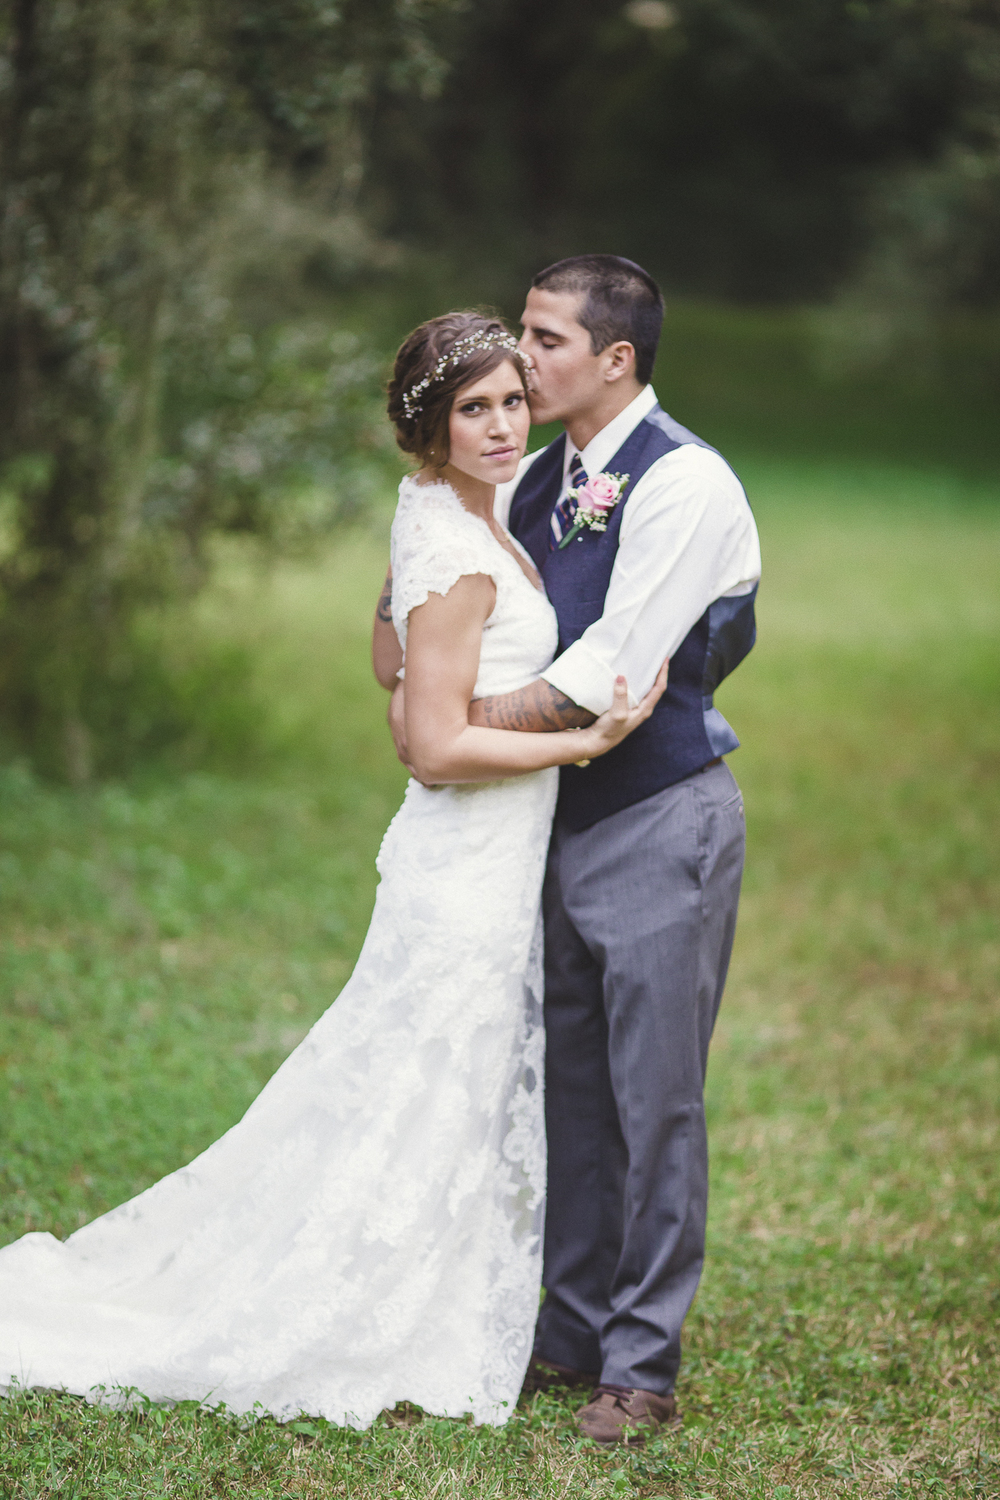 Laurel Gardens Wedding by Christina Maldonado Photography (101 of 143).JPG